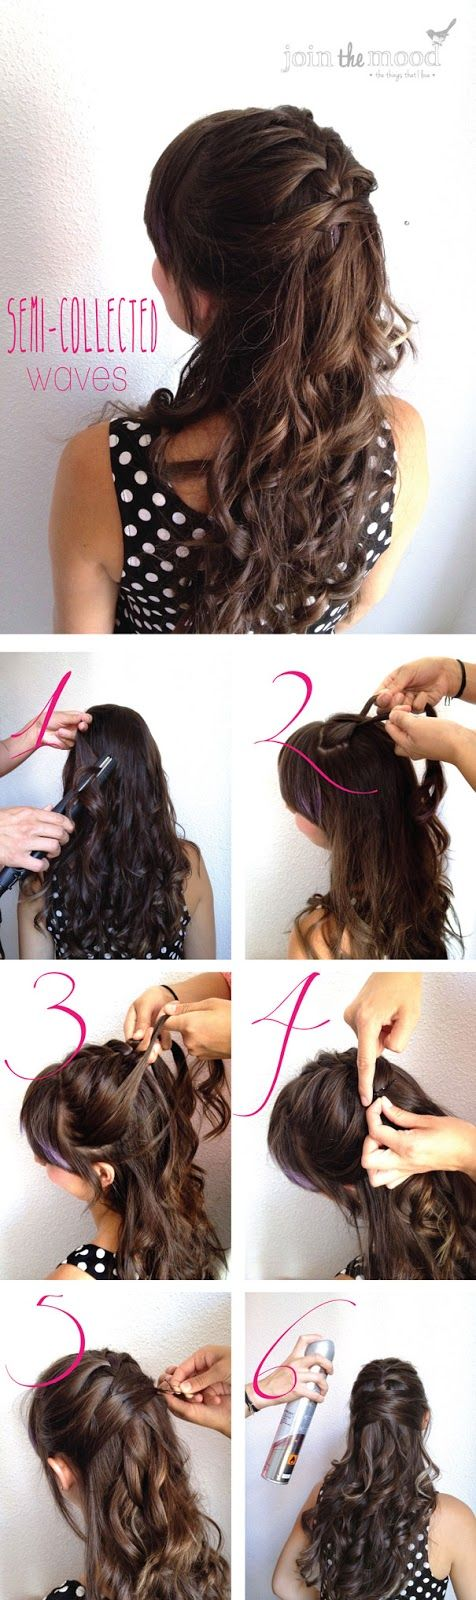 How To Make Semi-Collected Waves